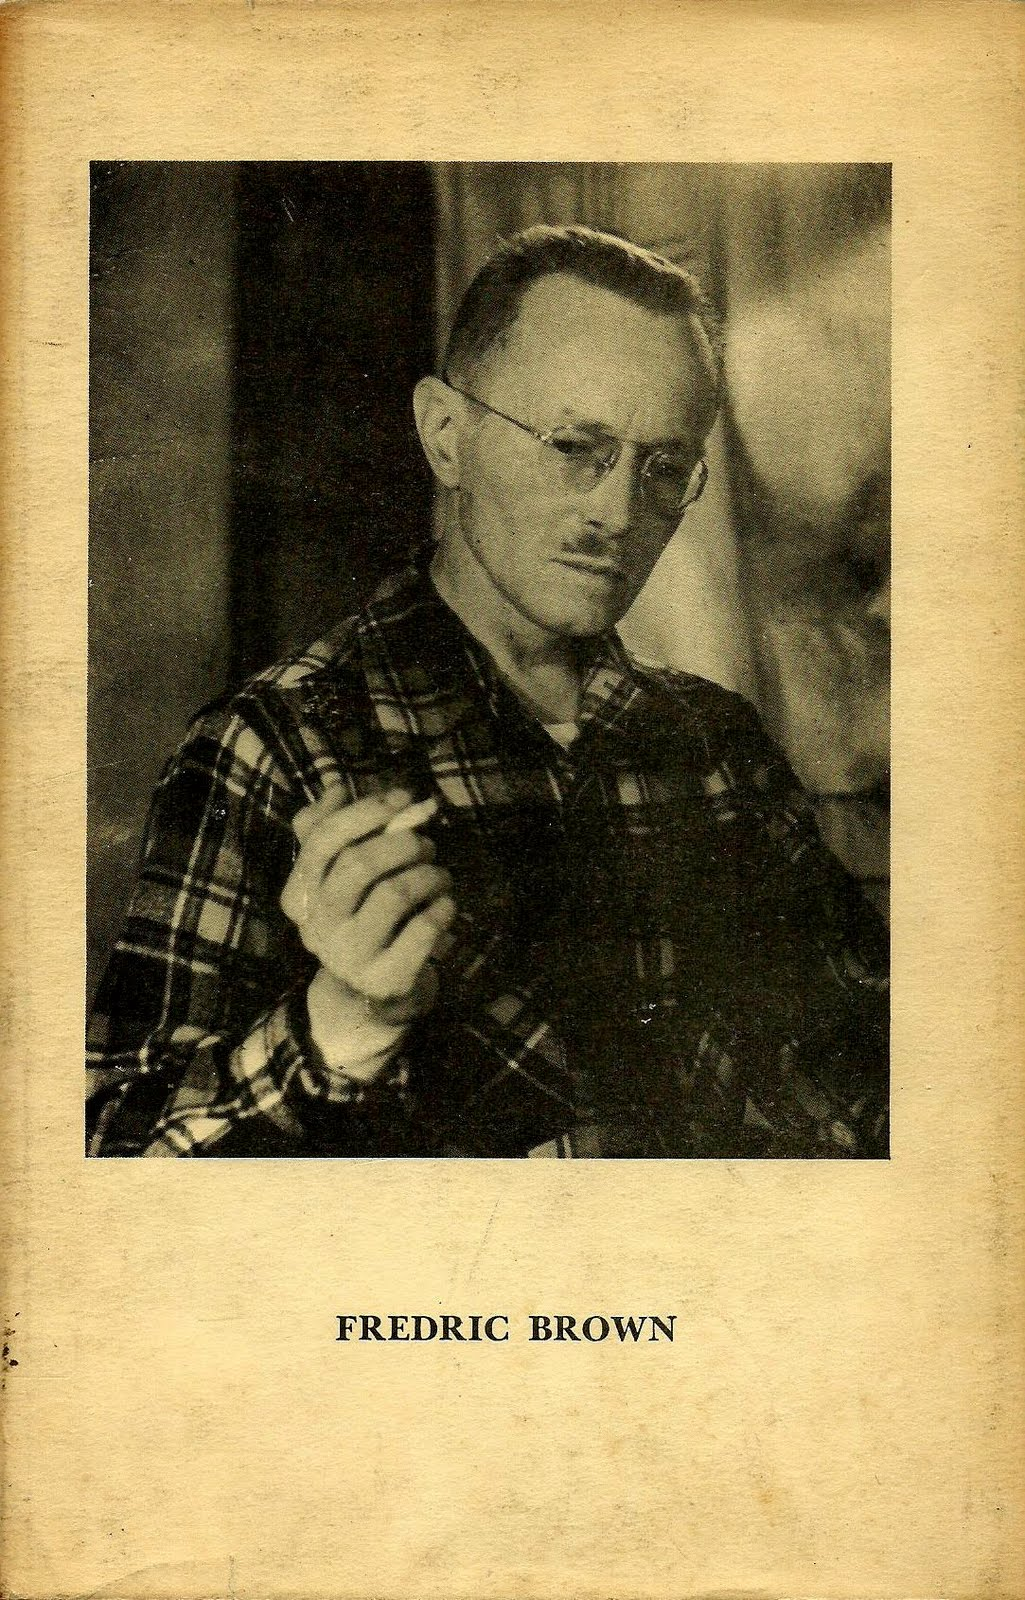 a literary analysis of the weapon by fredric brown